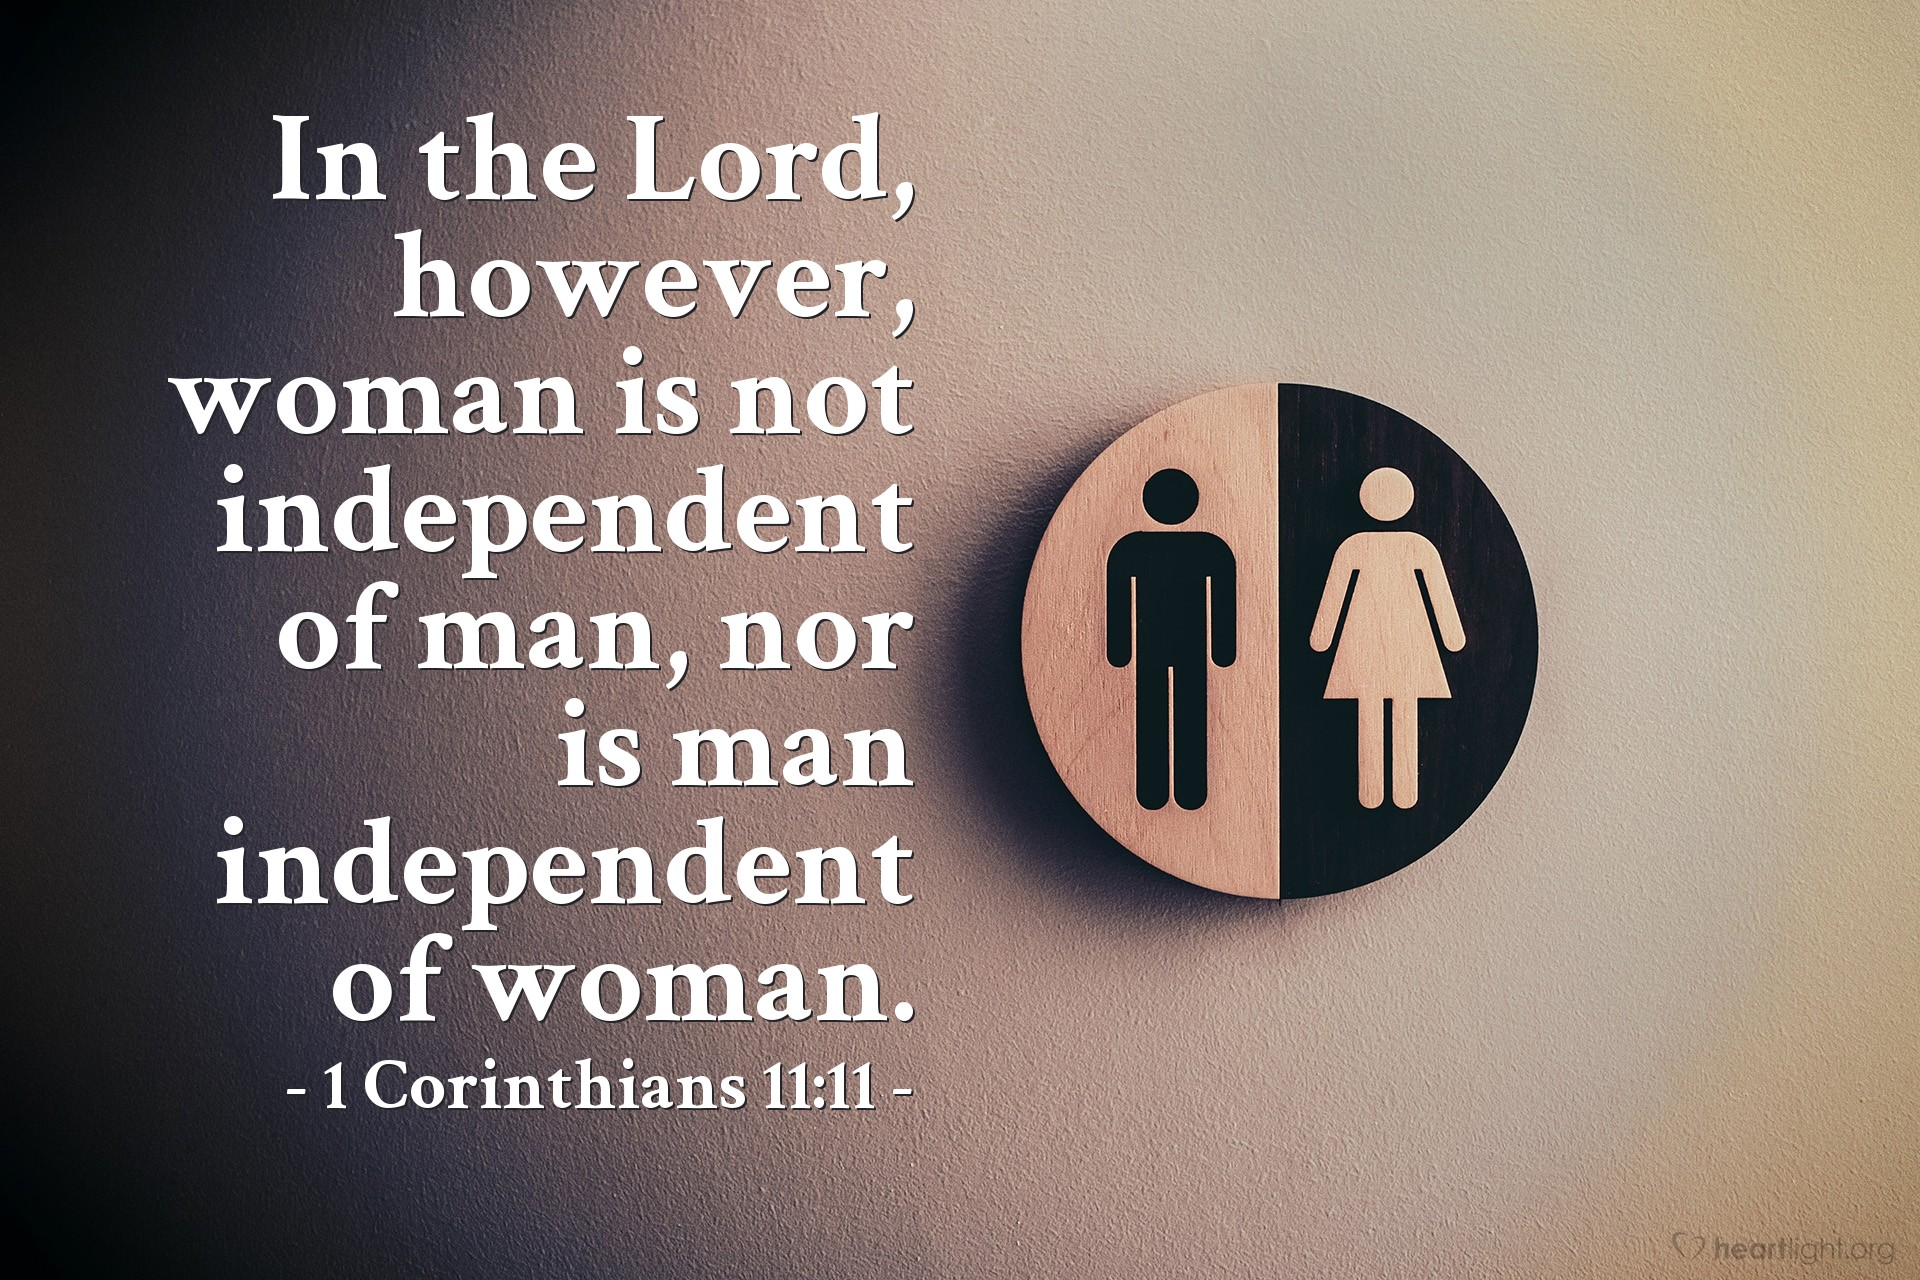 Inspirational illustration of 1 Corinthians 11:11